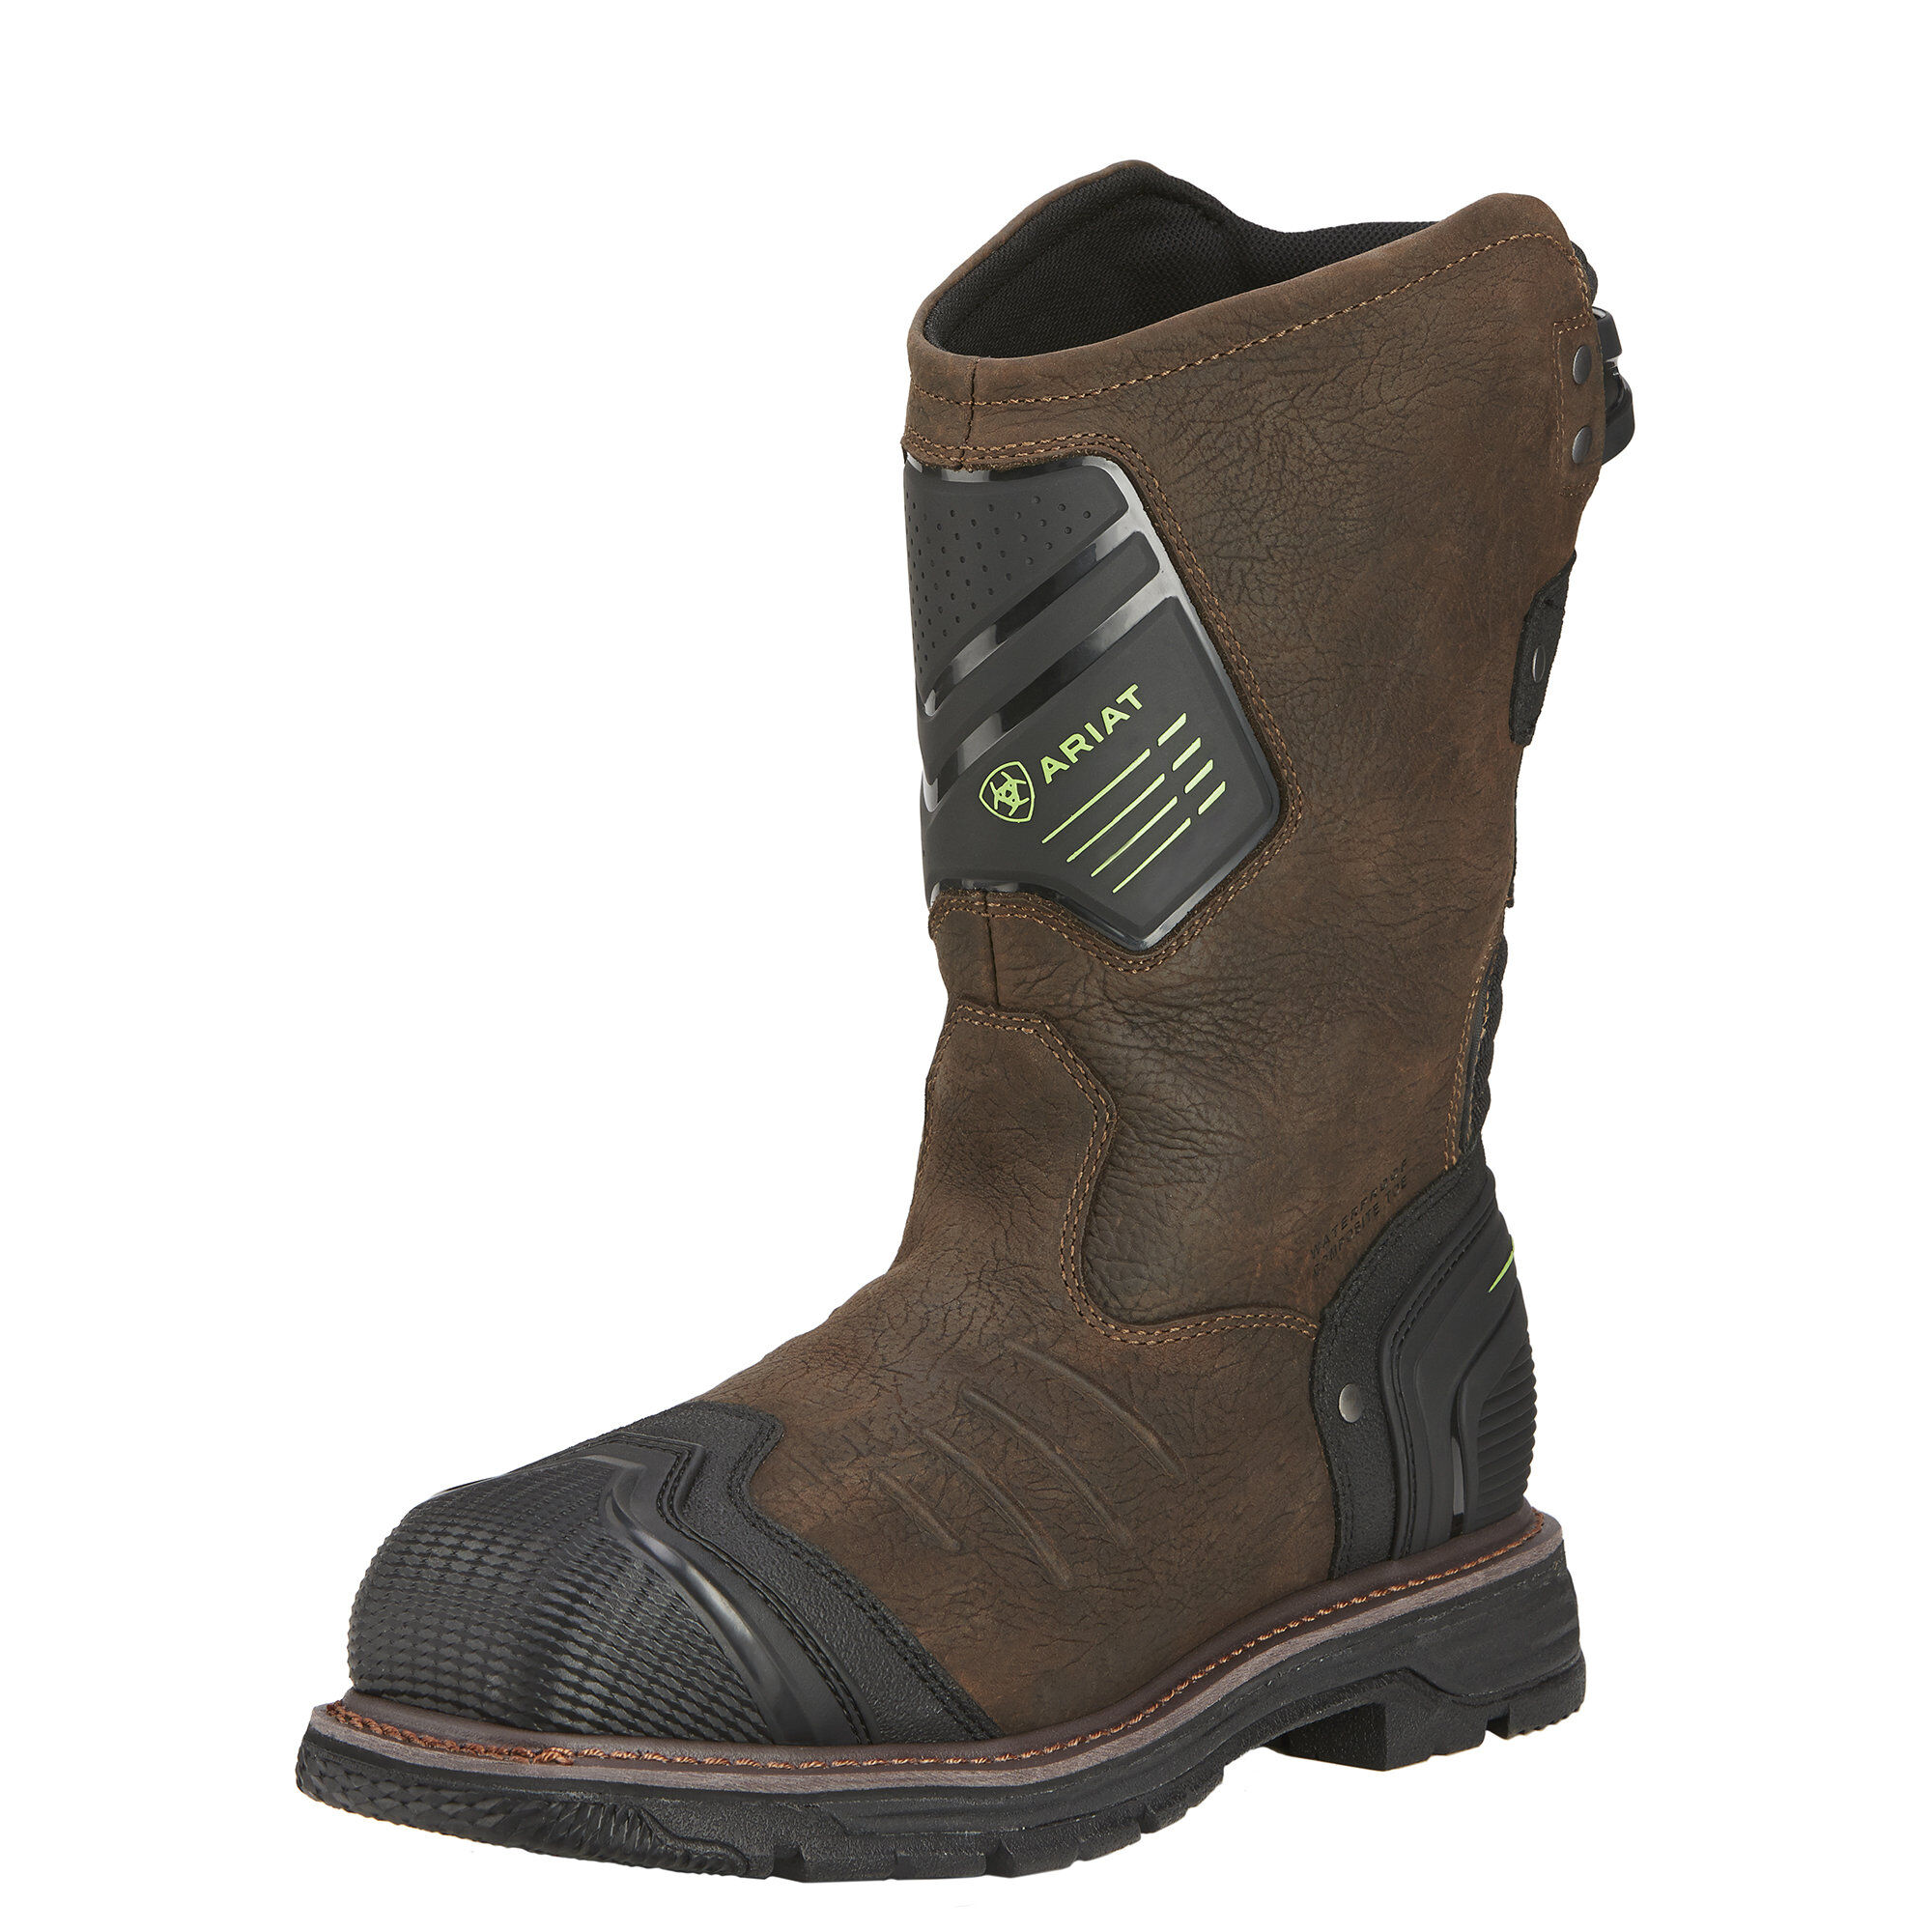 Ariat 10016253 Catalyst Vx H2O Safety Toe Pull On 10.5 EE Wellington Work Boot